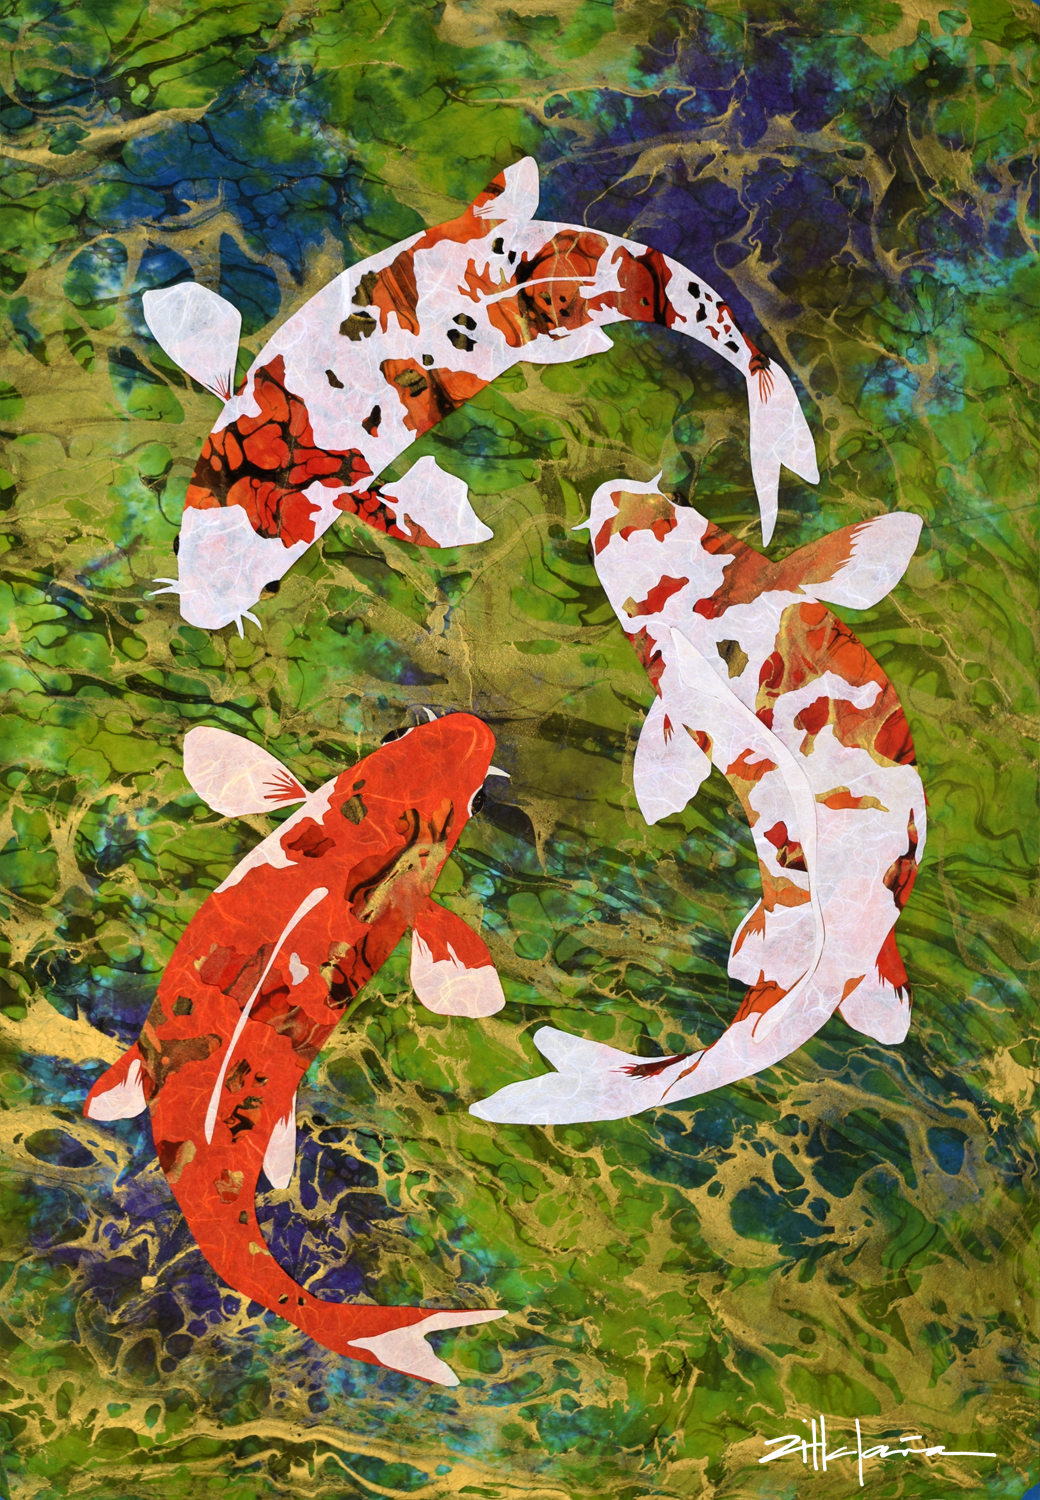 """AREN'T WE KOI?"" Water art by Fine Artist Marcy Ann Villafana"